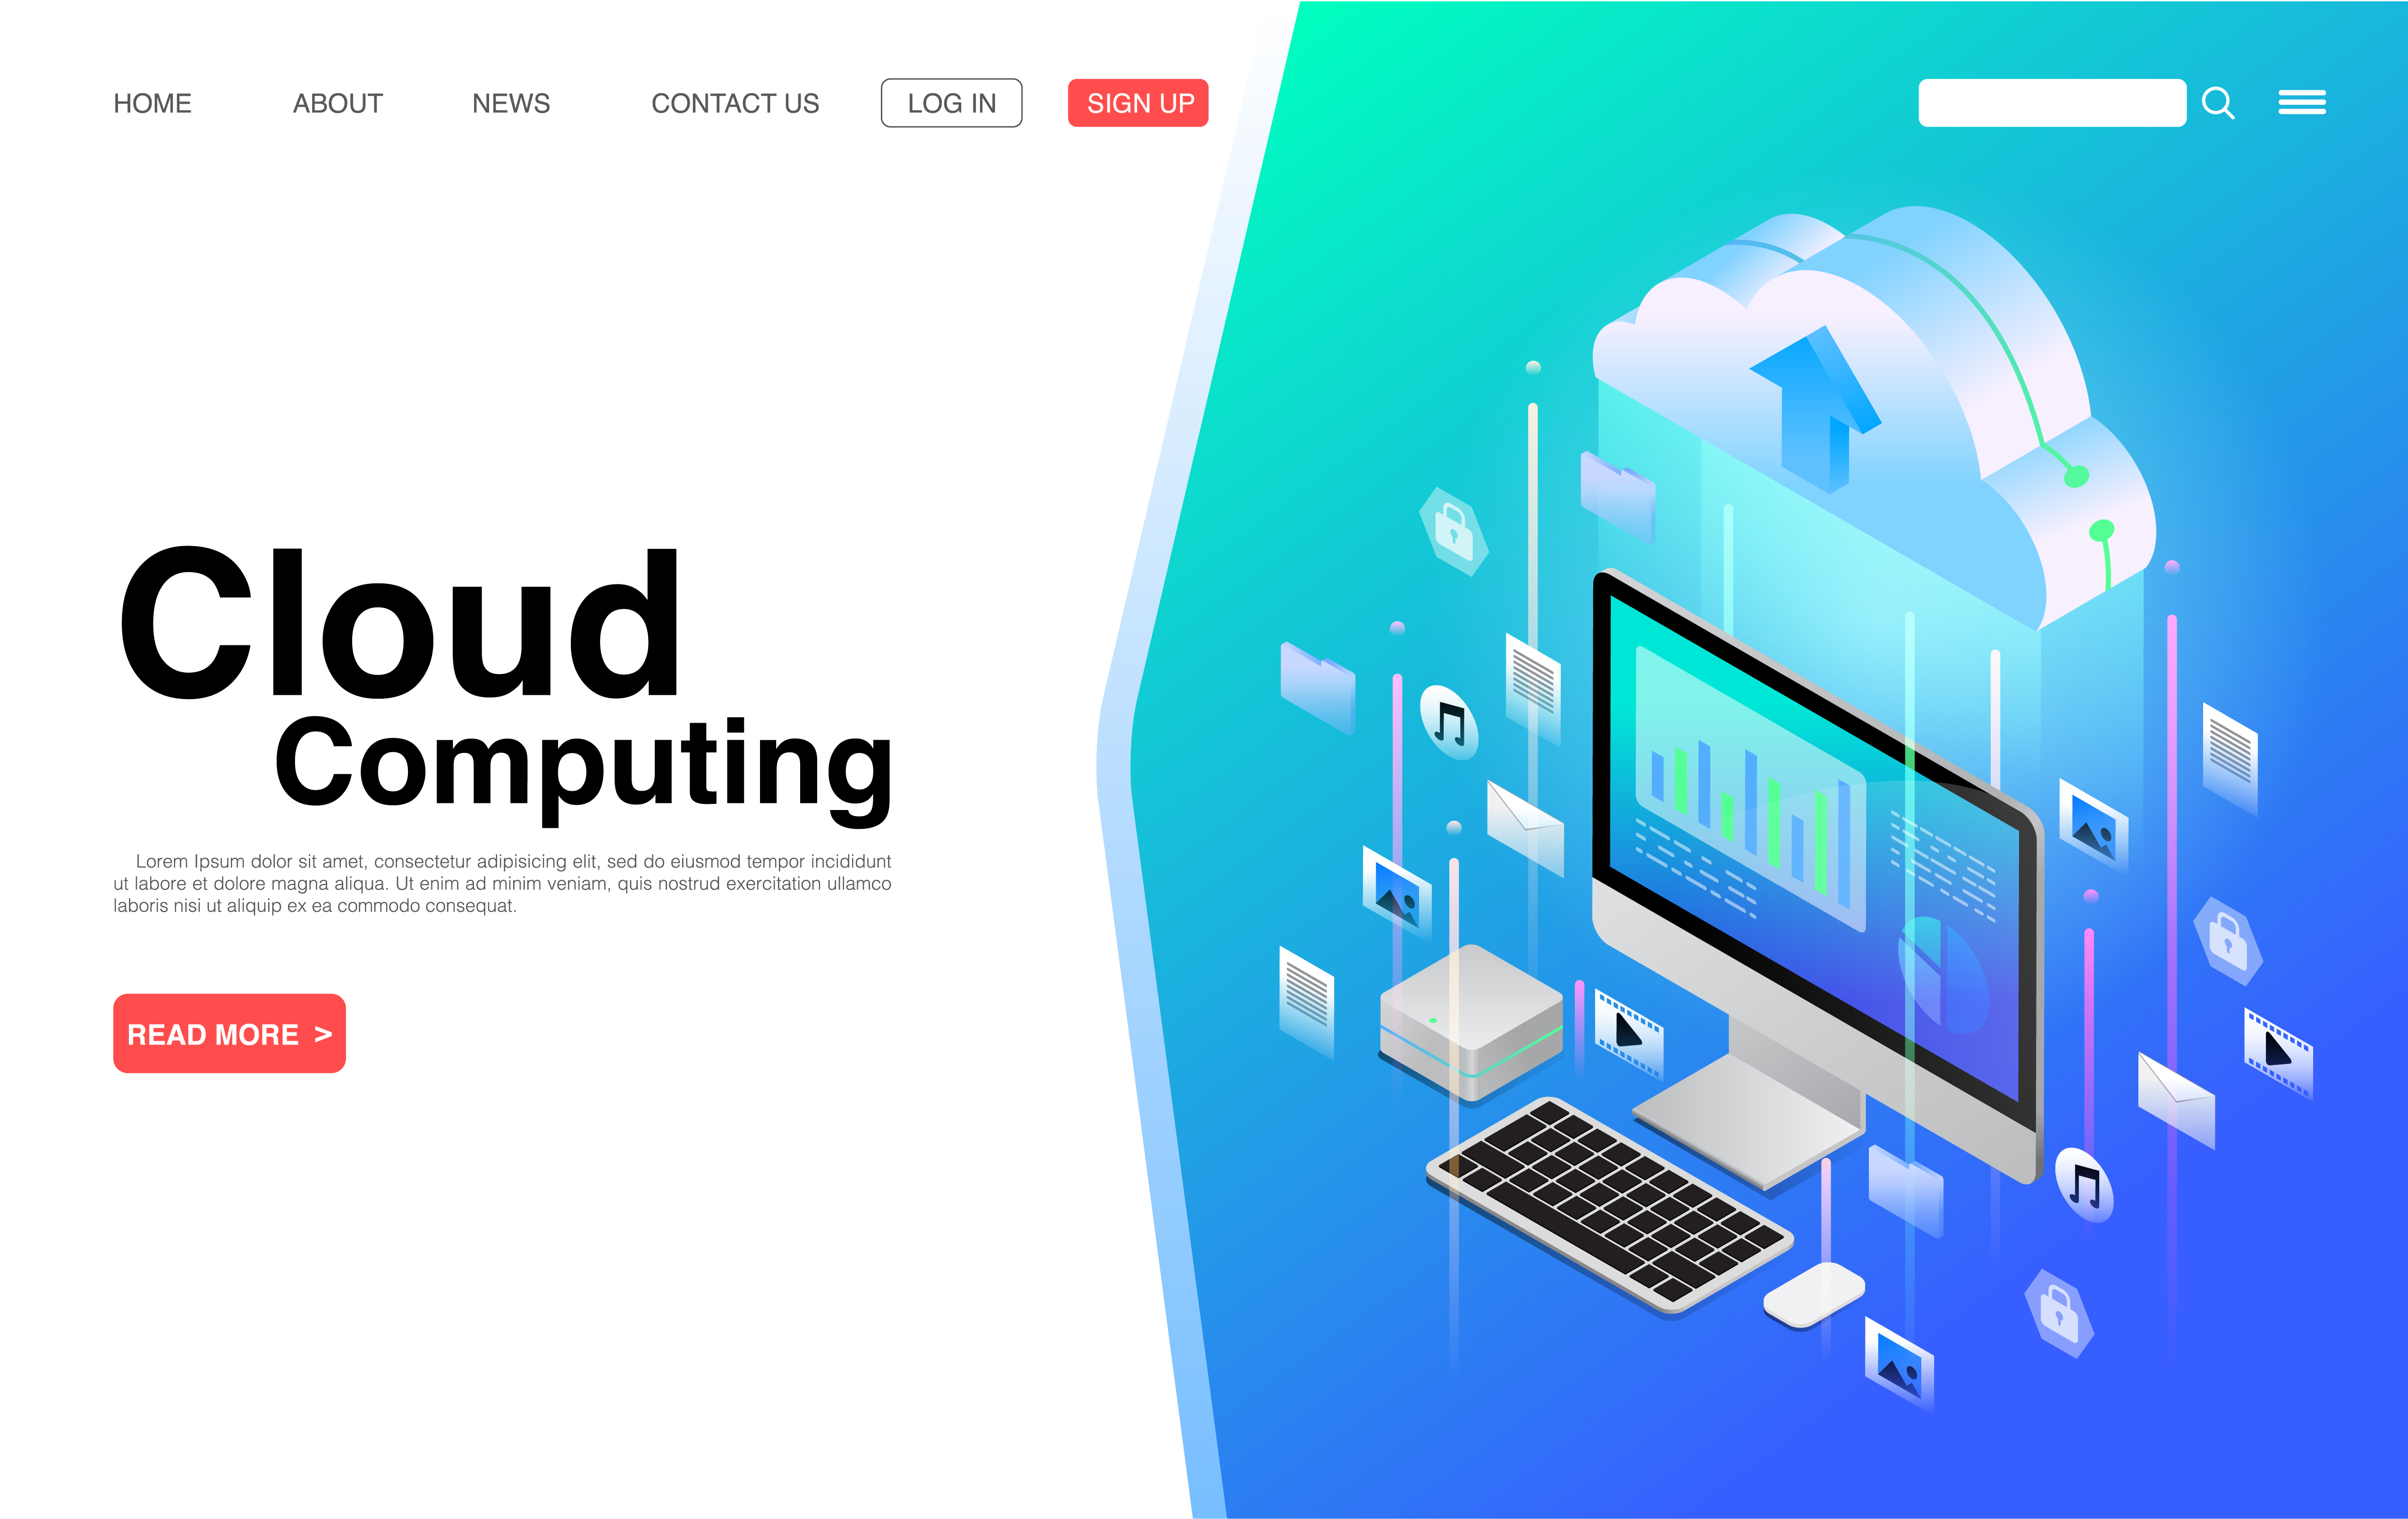 Cloud Computing Services and Technology Landing Page